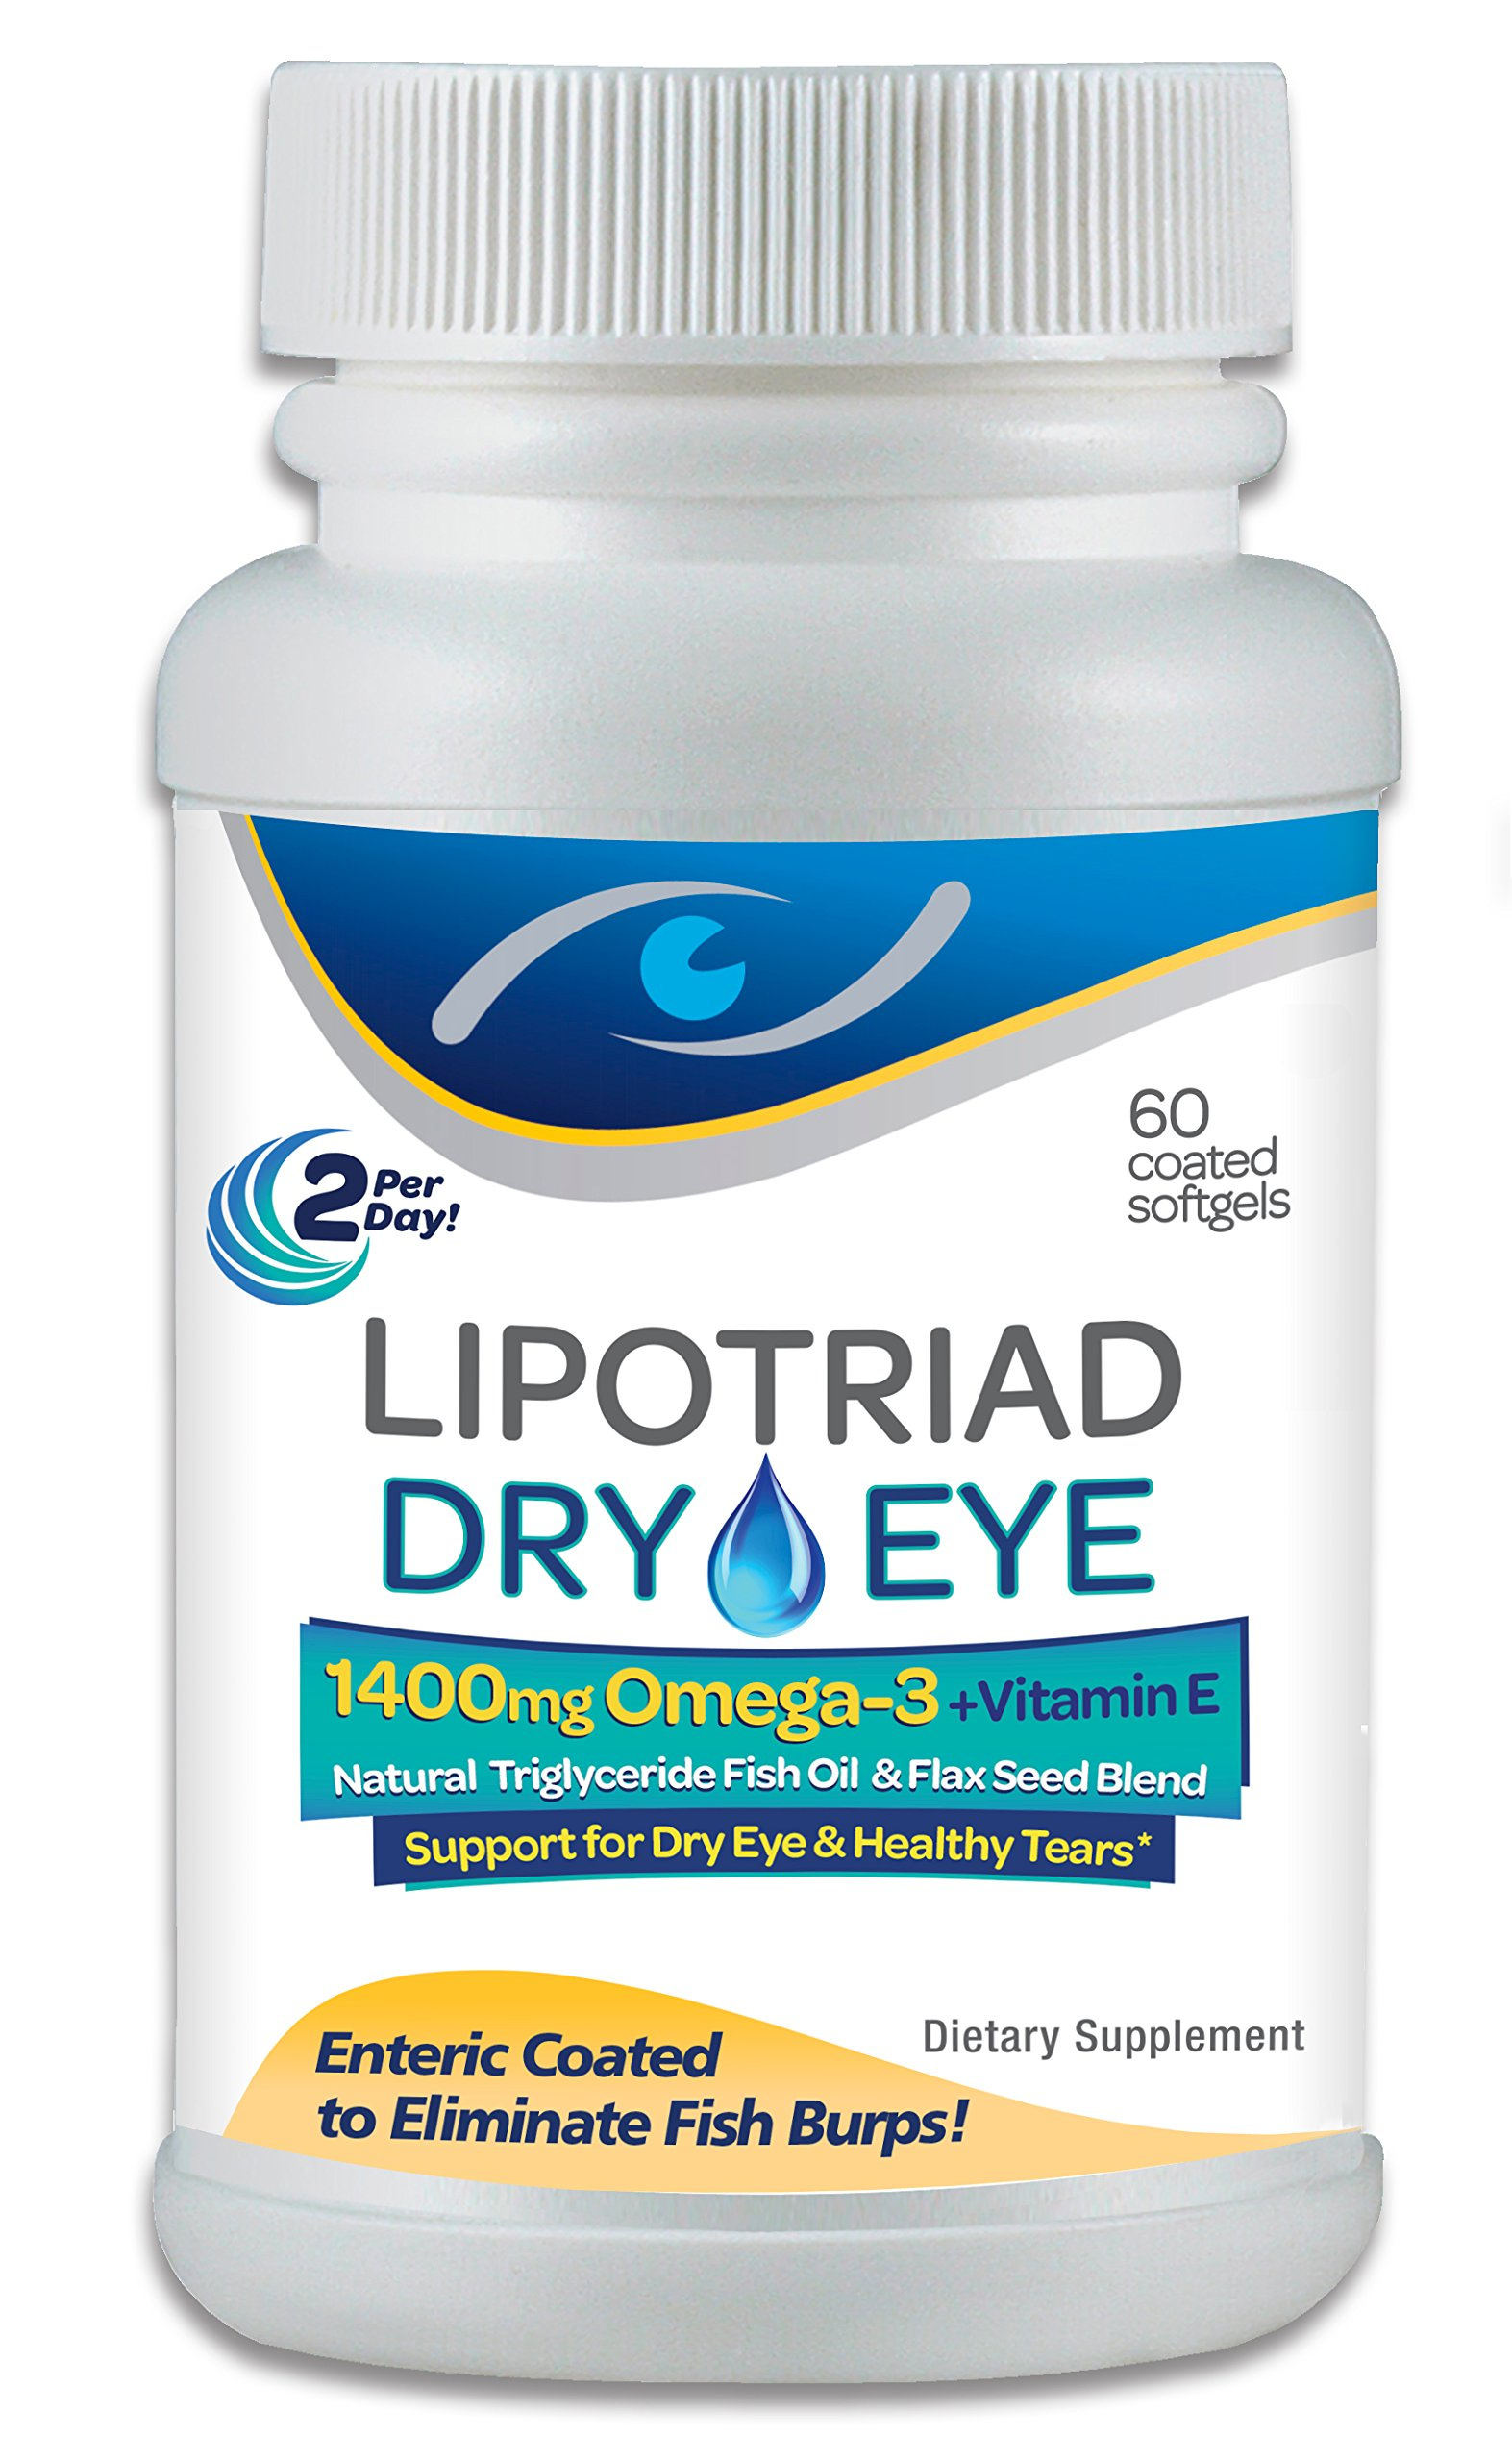 Lipotriad Dry Eye Formula - 1400Mg Omega-3 Supplement - With 1400Mg Natural T.. 8